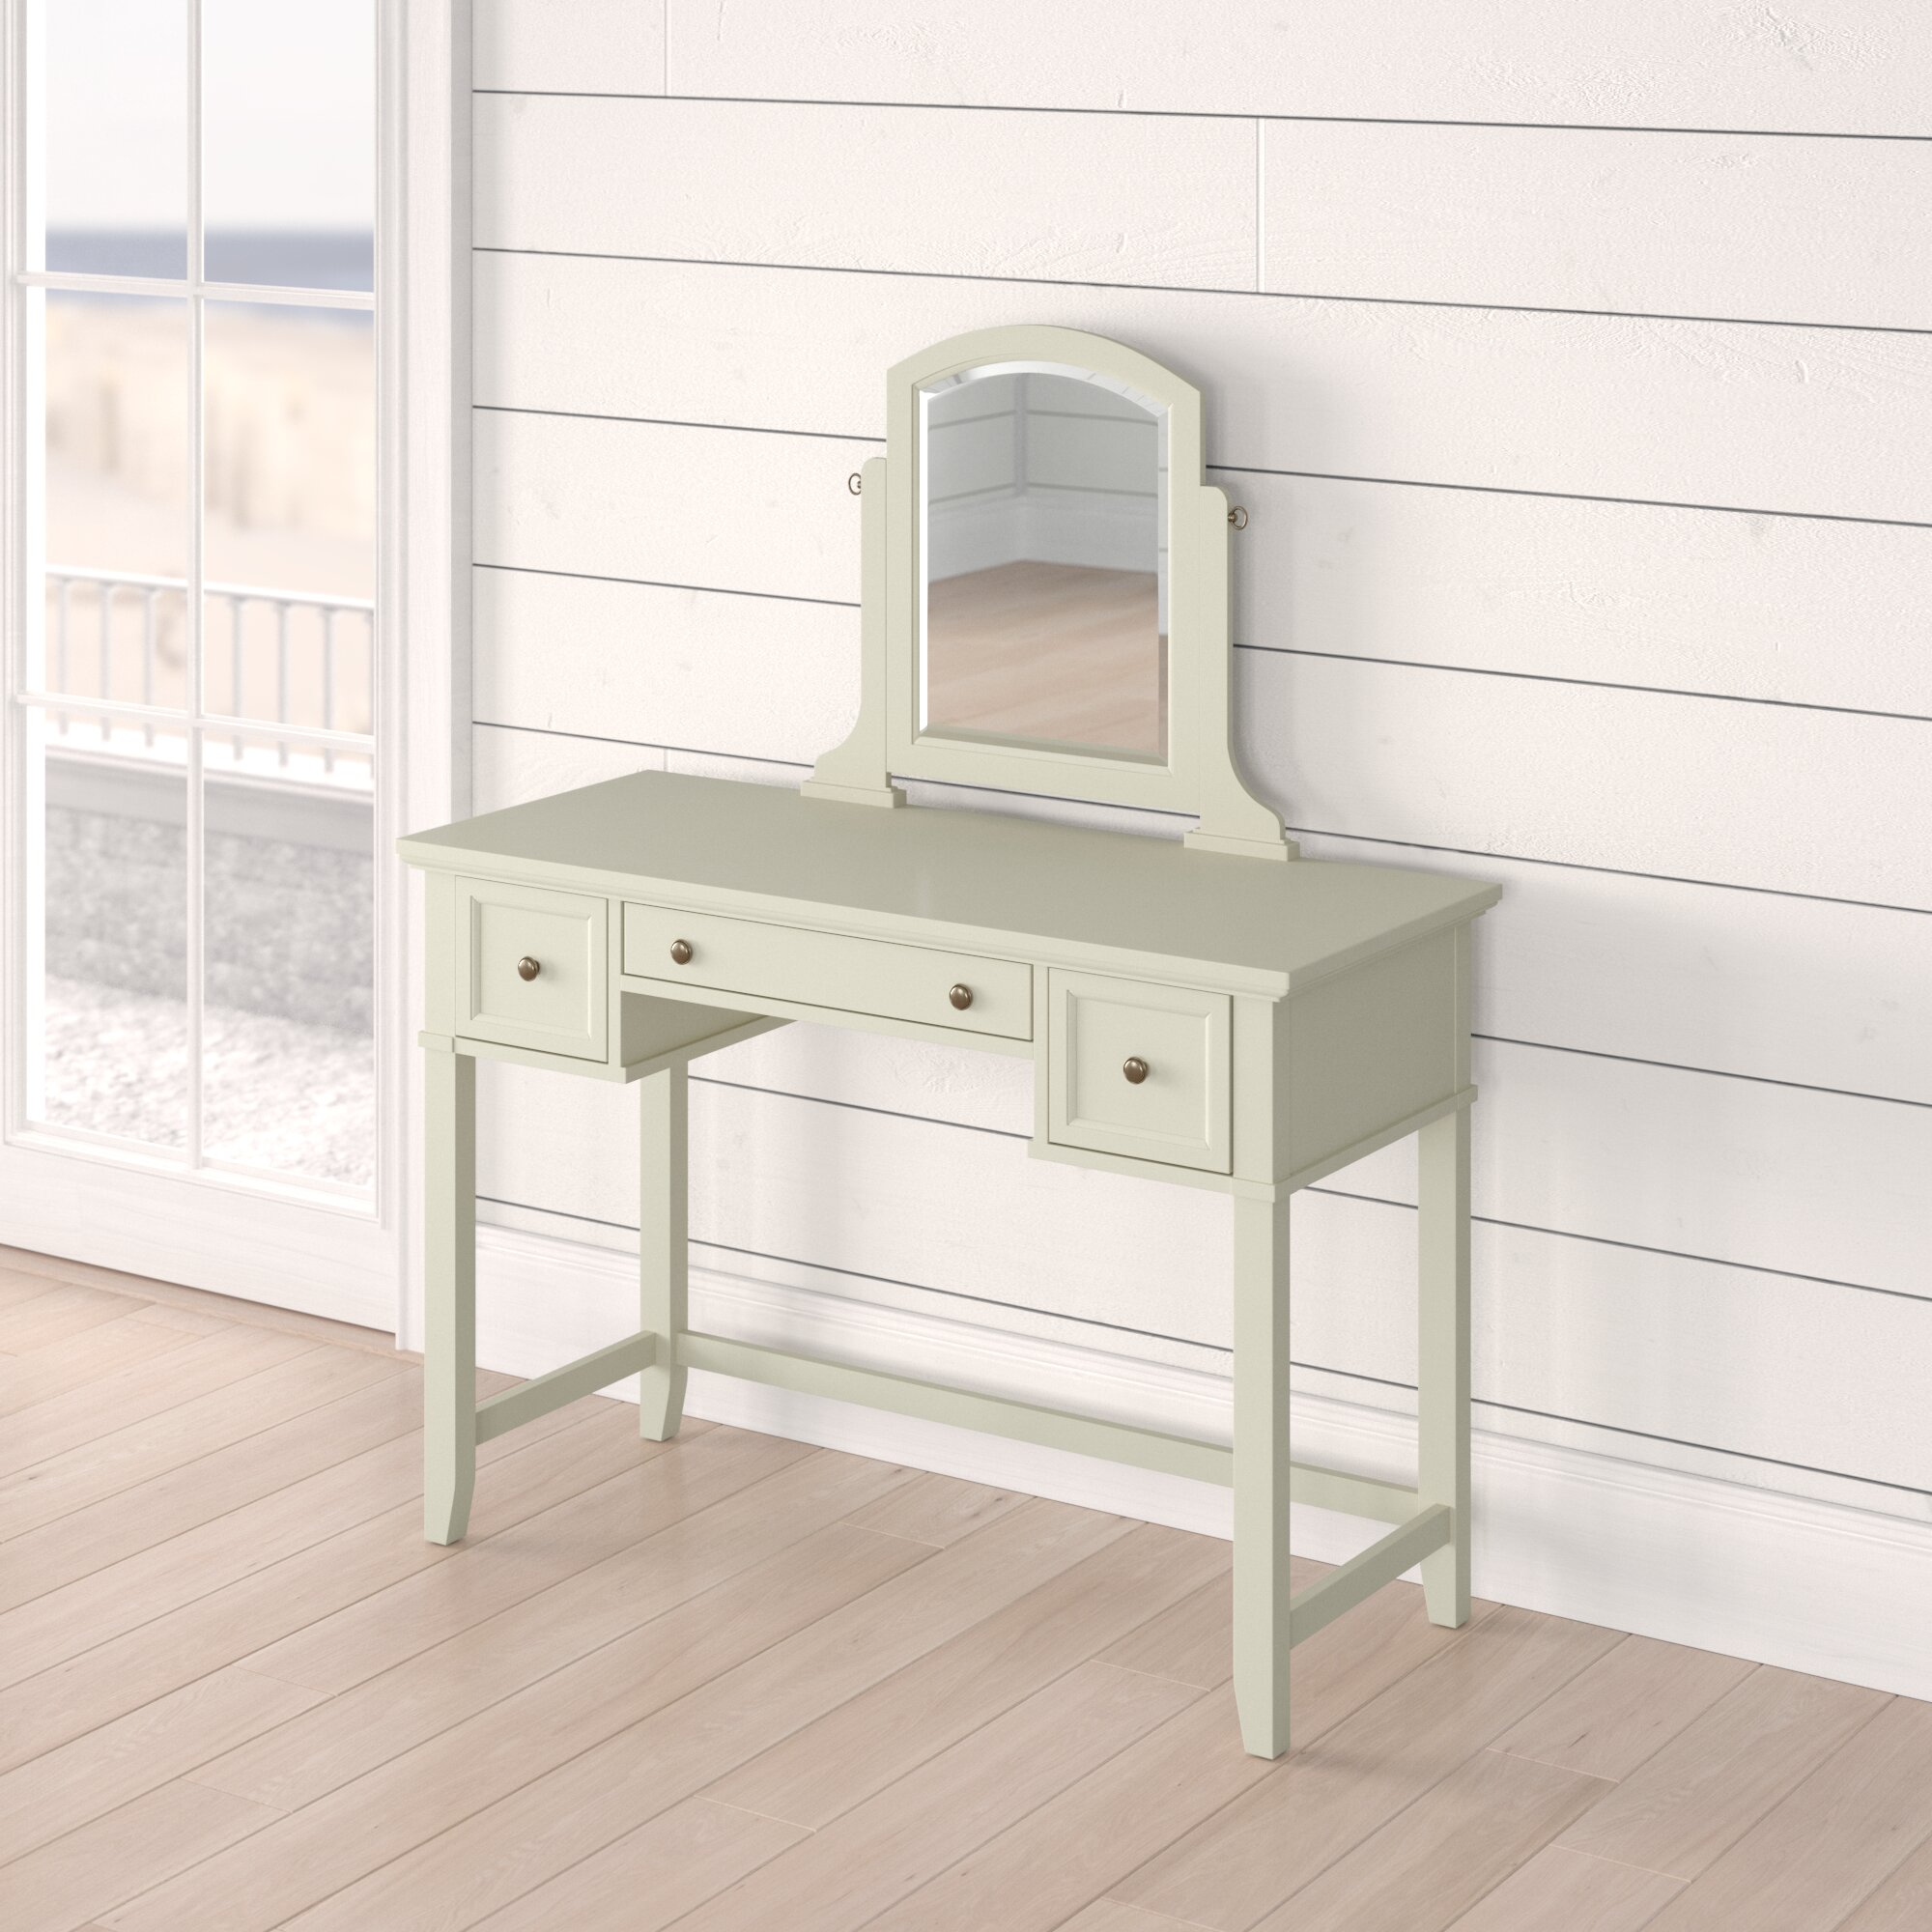 Rustic Cottage Country Makeup Vanities Free Shipping Over 35 Wayfair